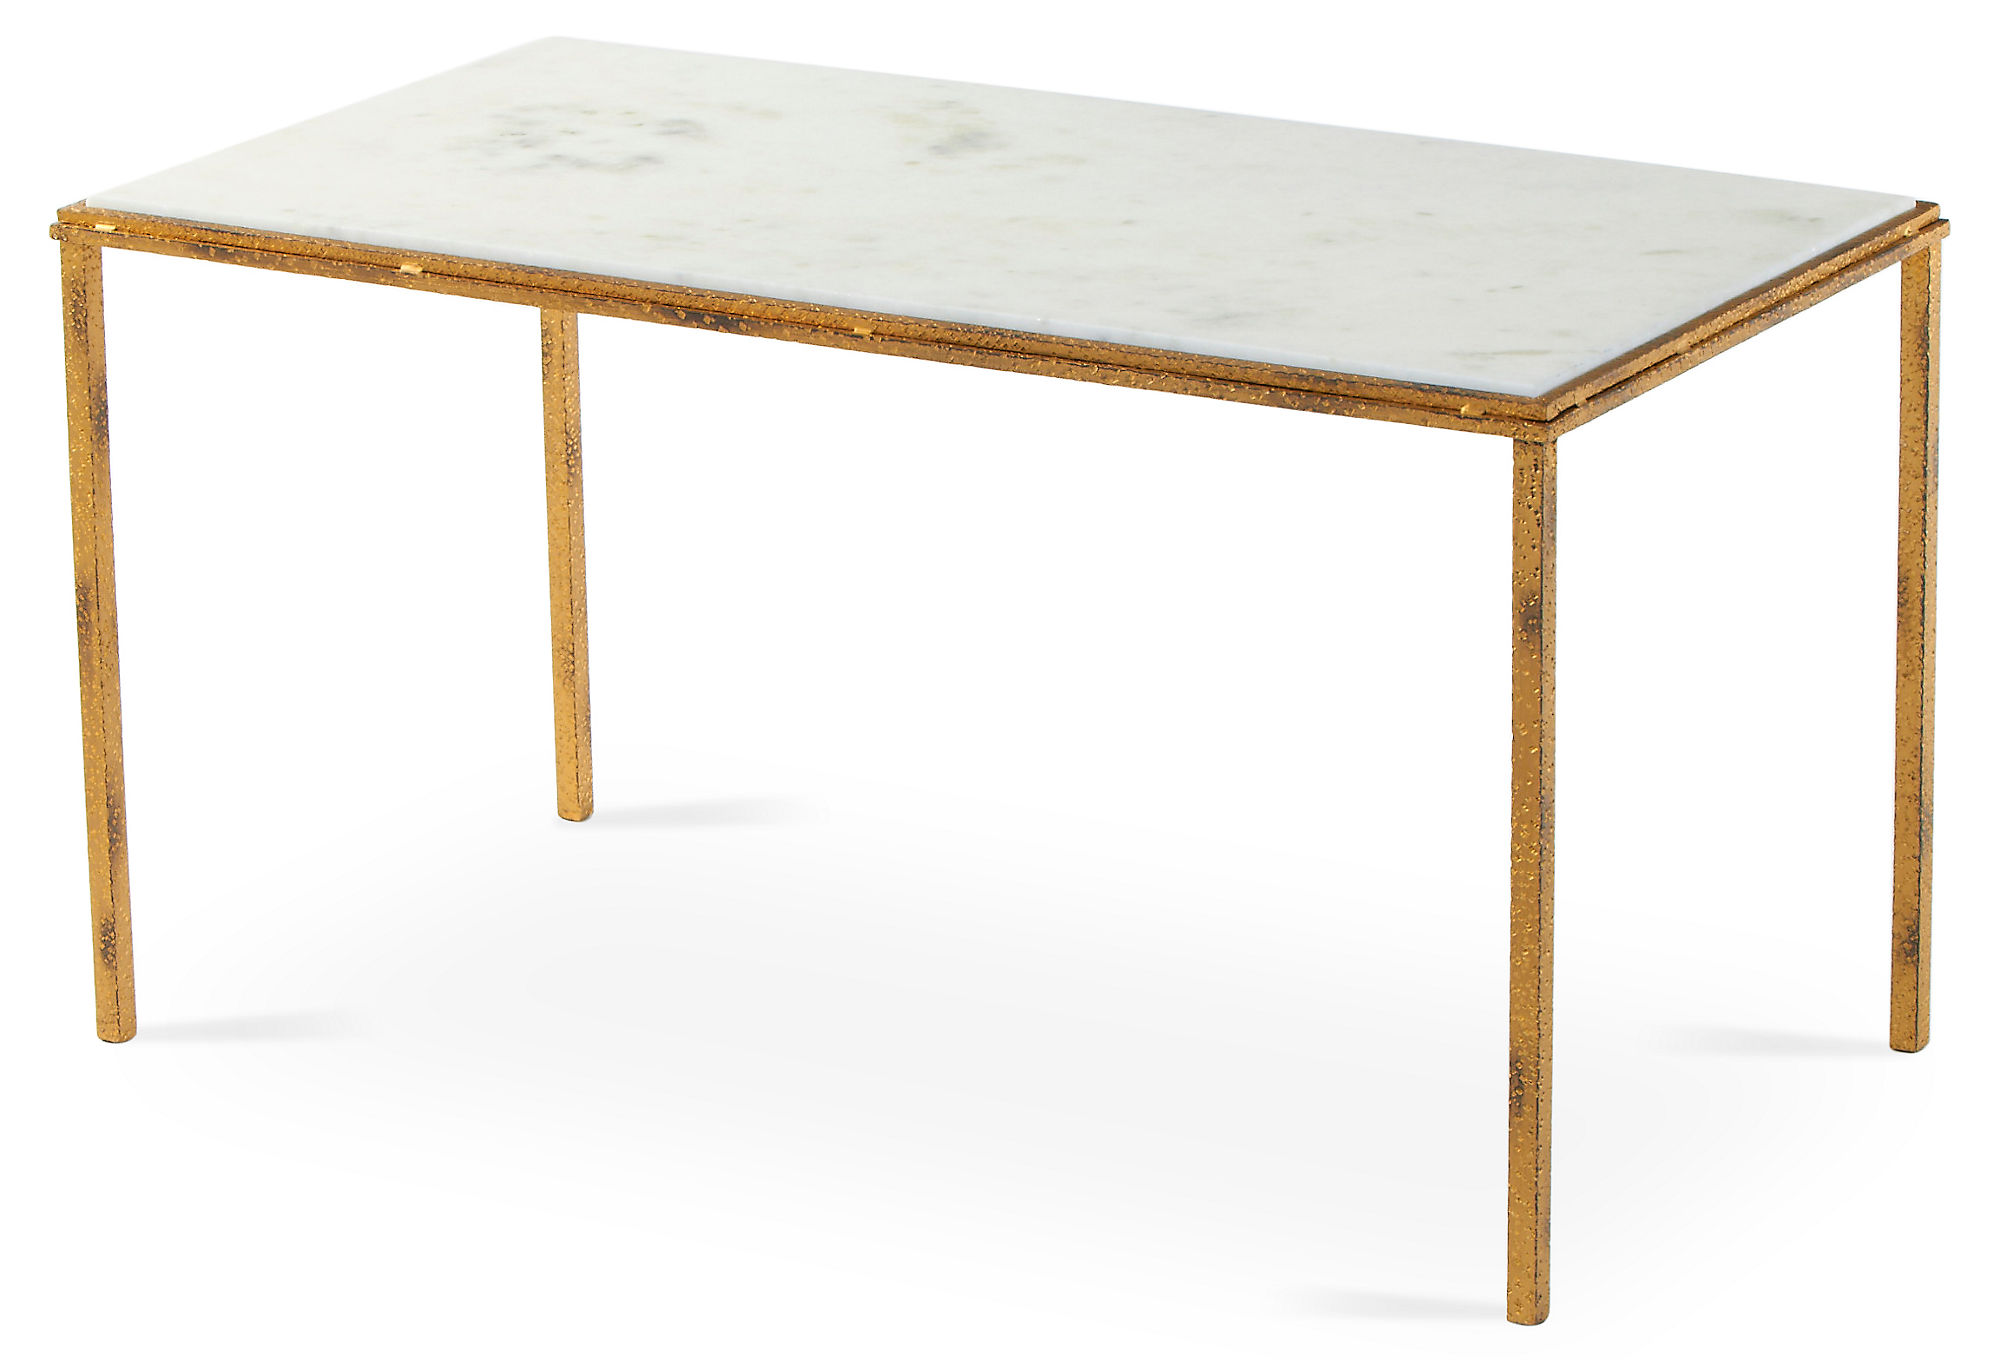 Bridging Ellipse Coffee Table Travertine antique Brass by West